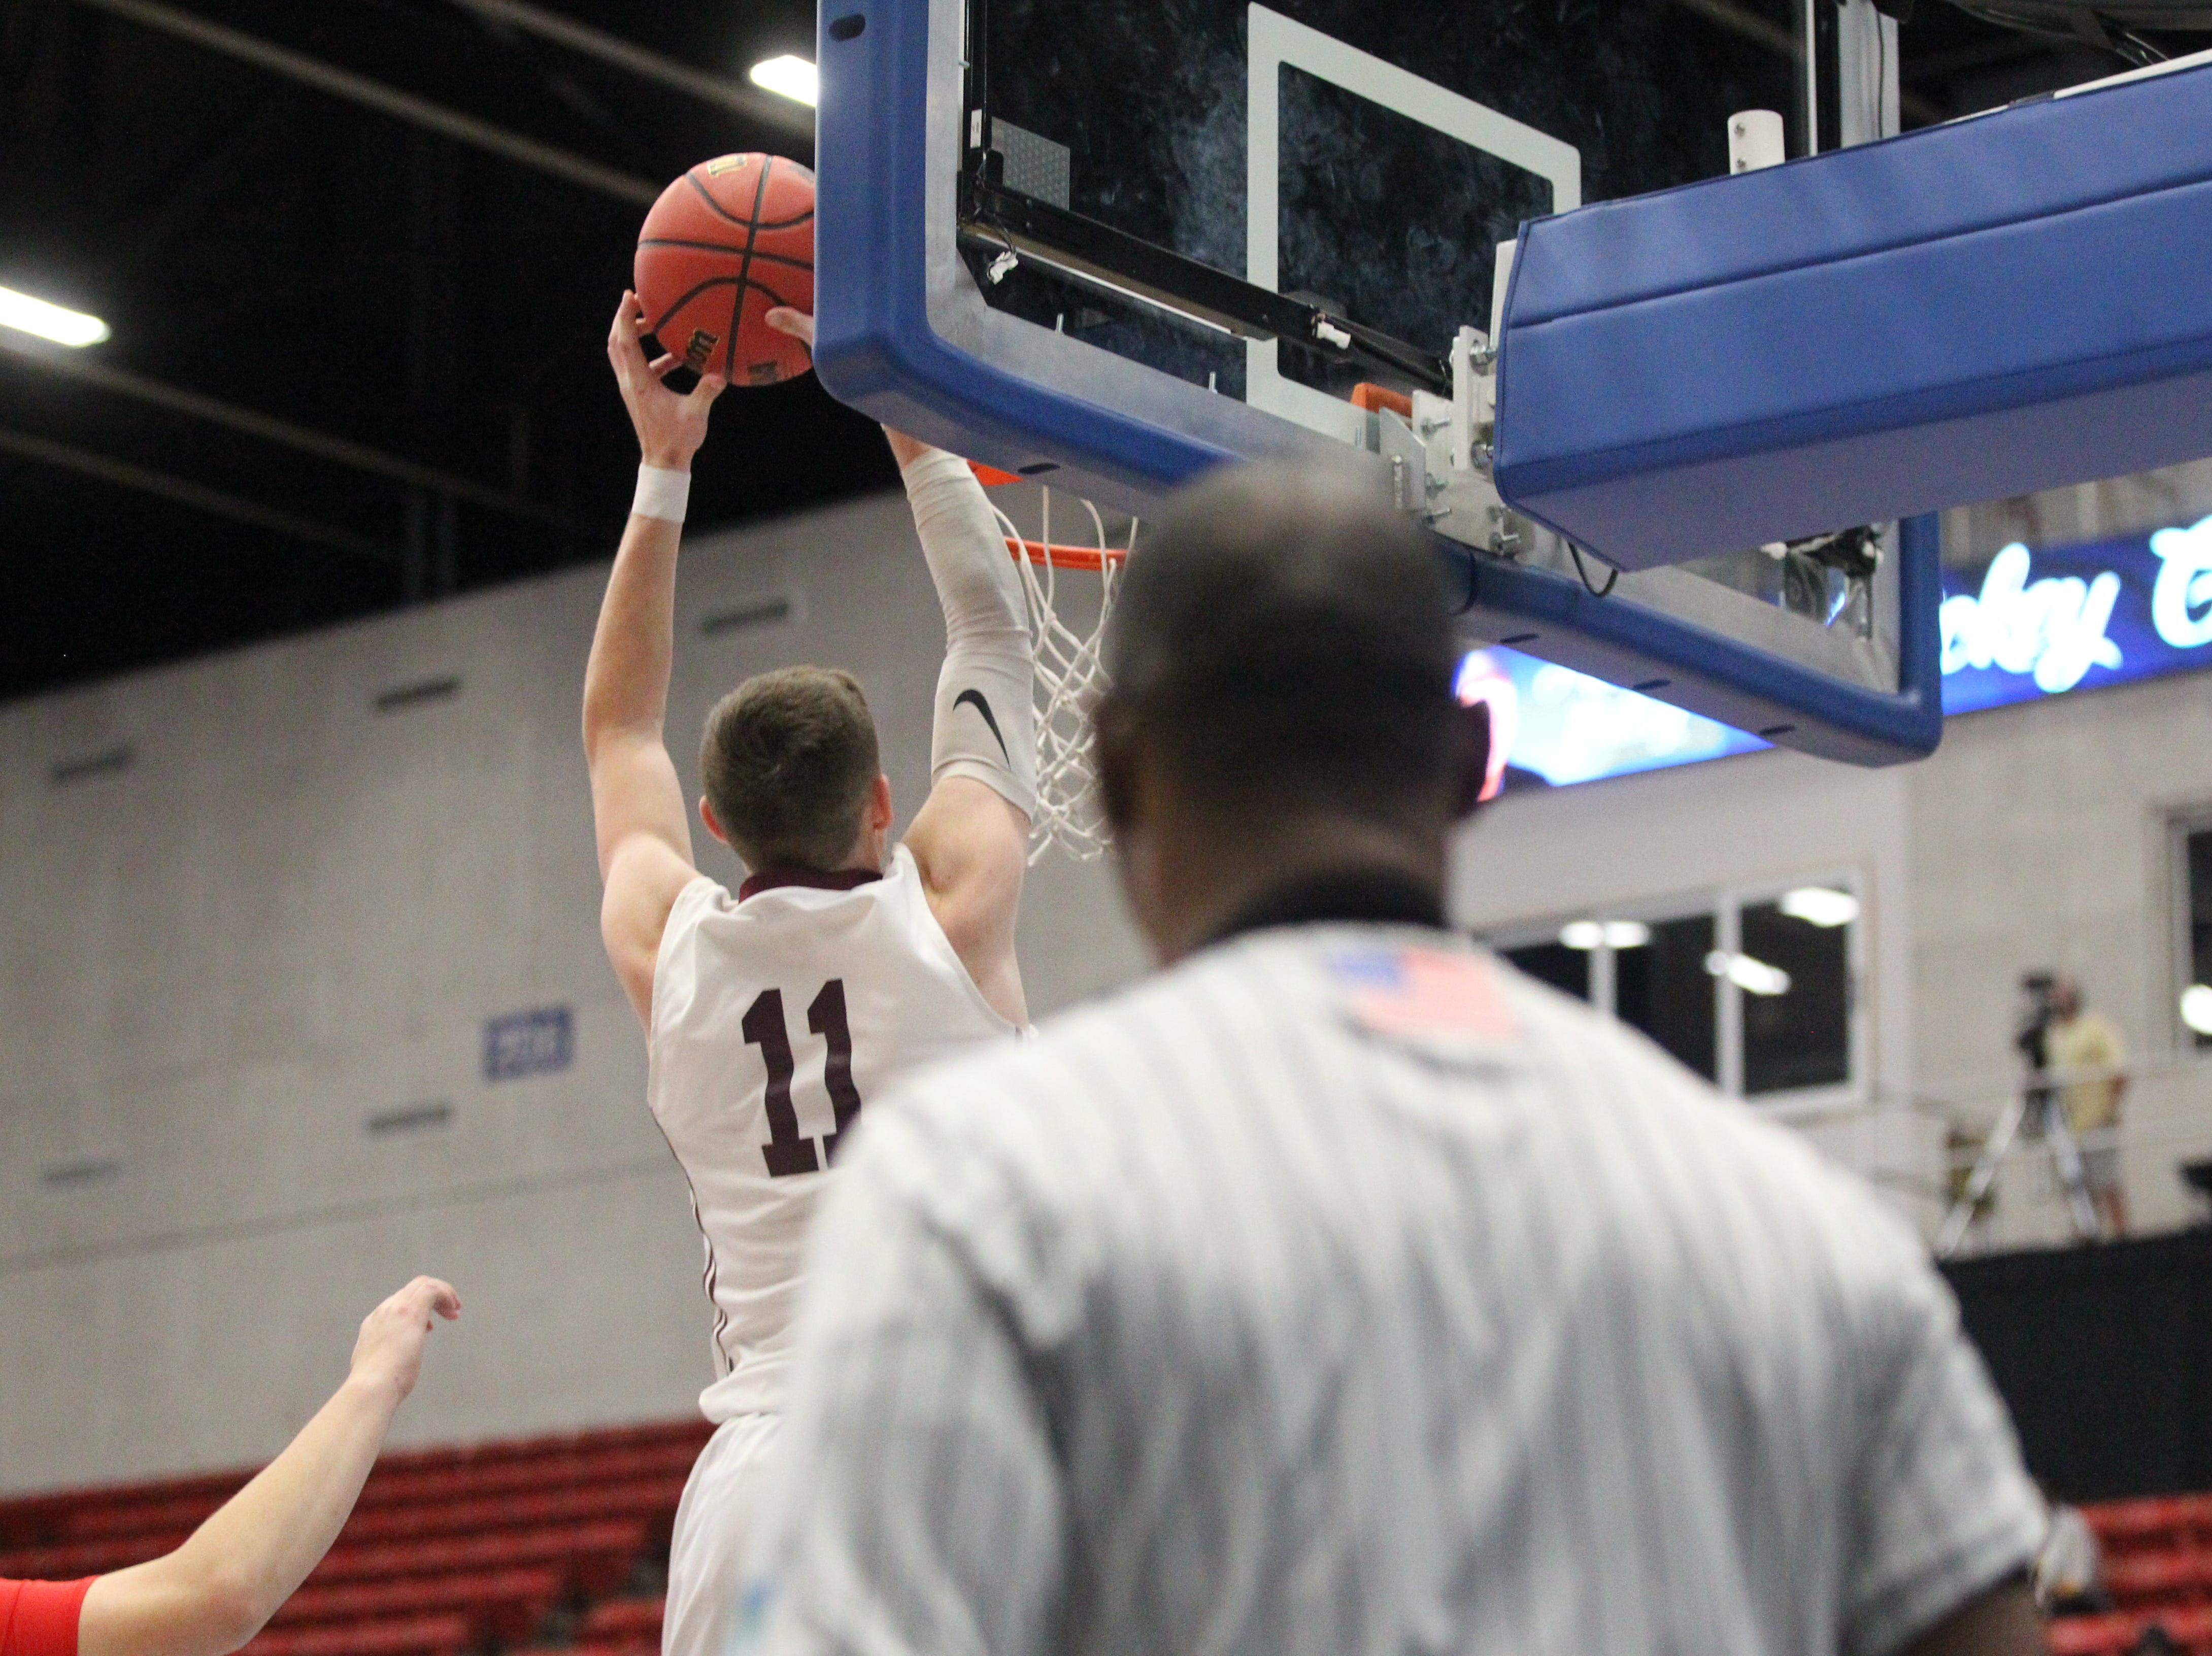 Madison County beat Paxton 63-51 during a Class 1A state semifinal at the RP Funding Center in Lakeland on March 4, 2019.